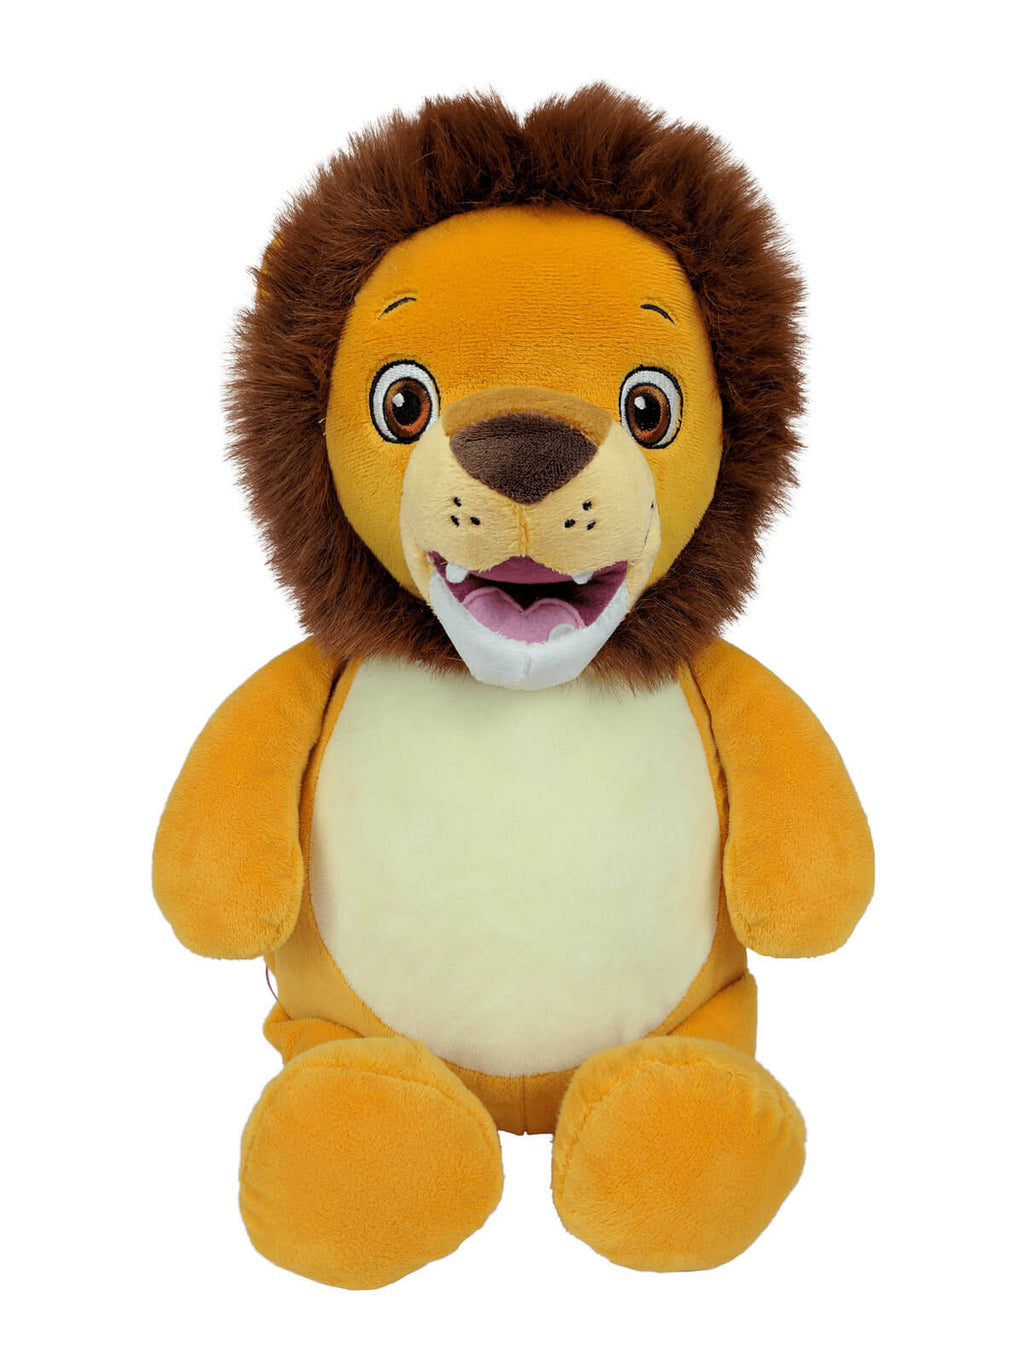 Personalised Teddy - Signature Lion - D'lighted